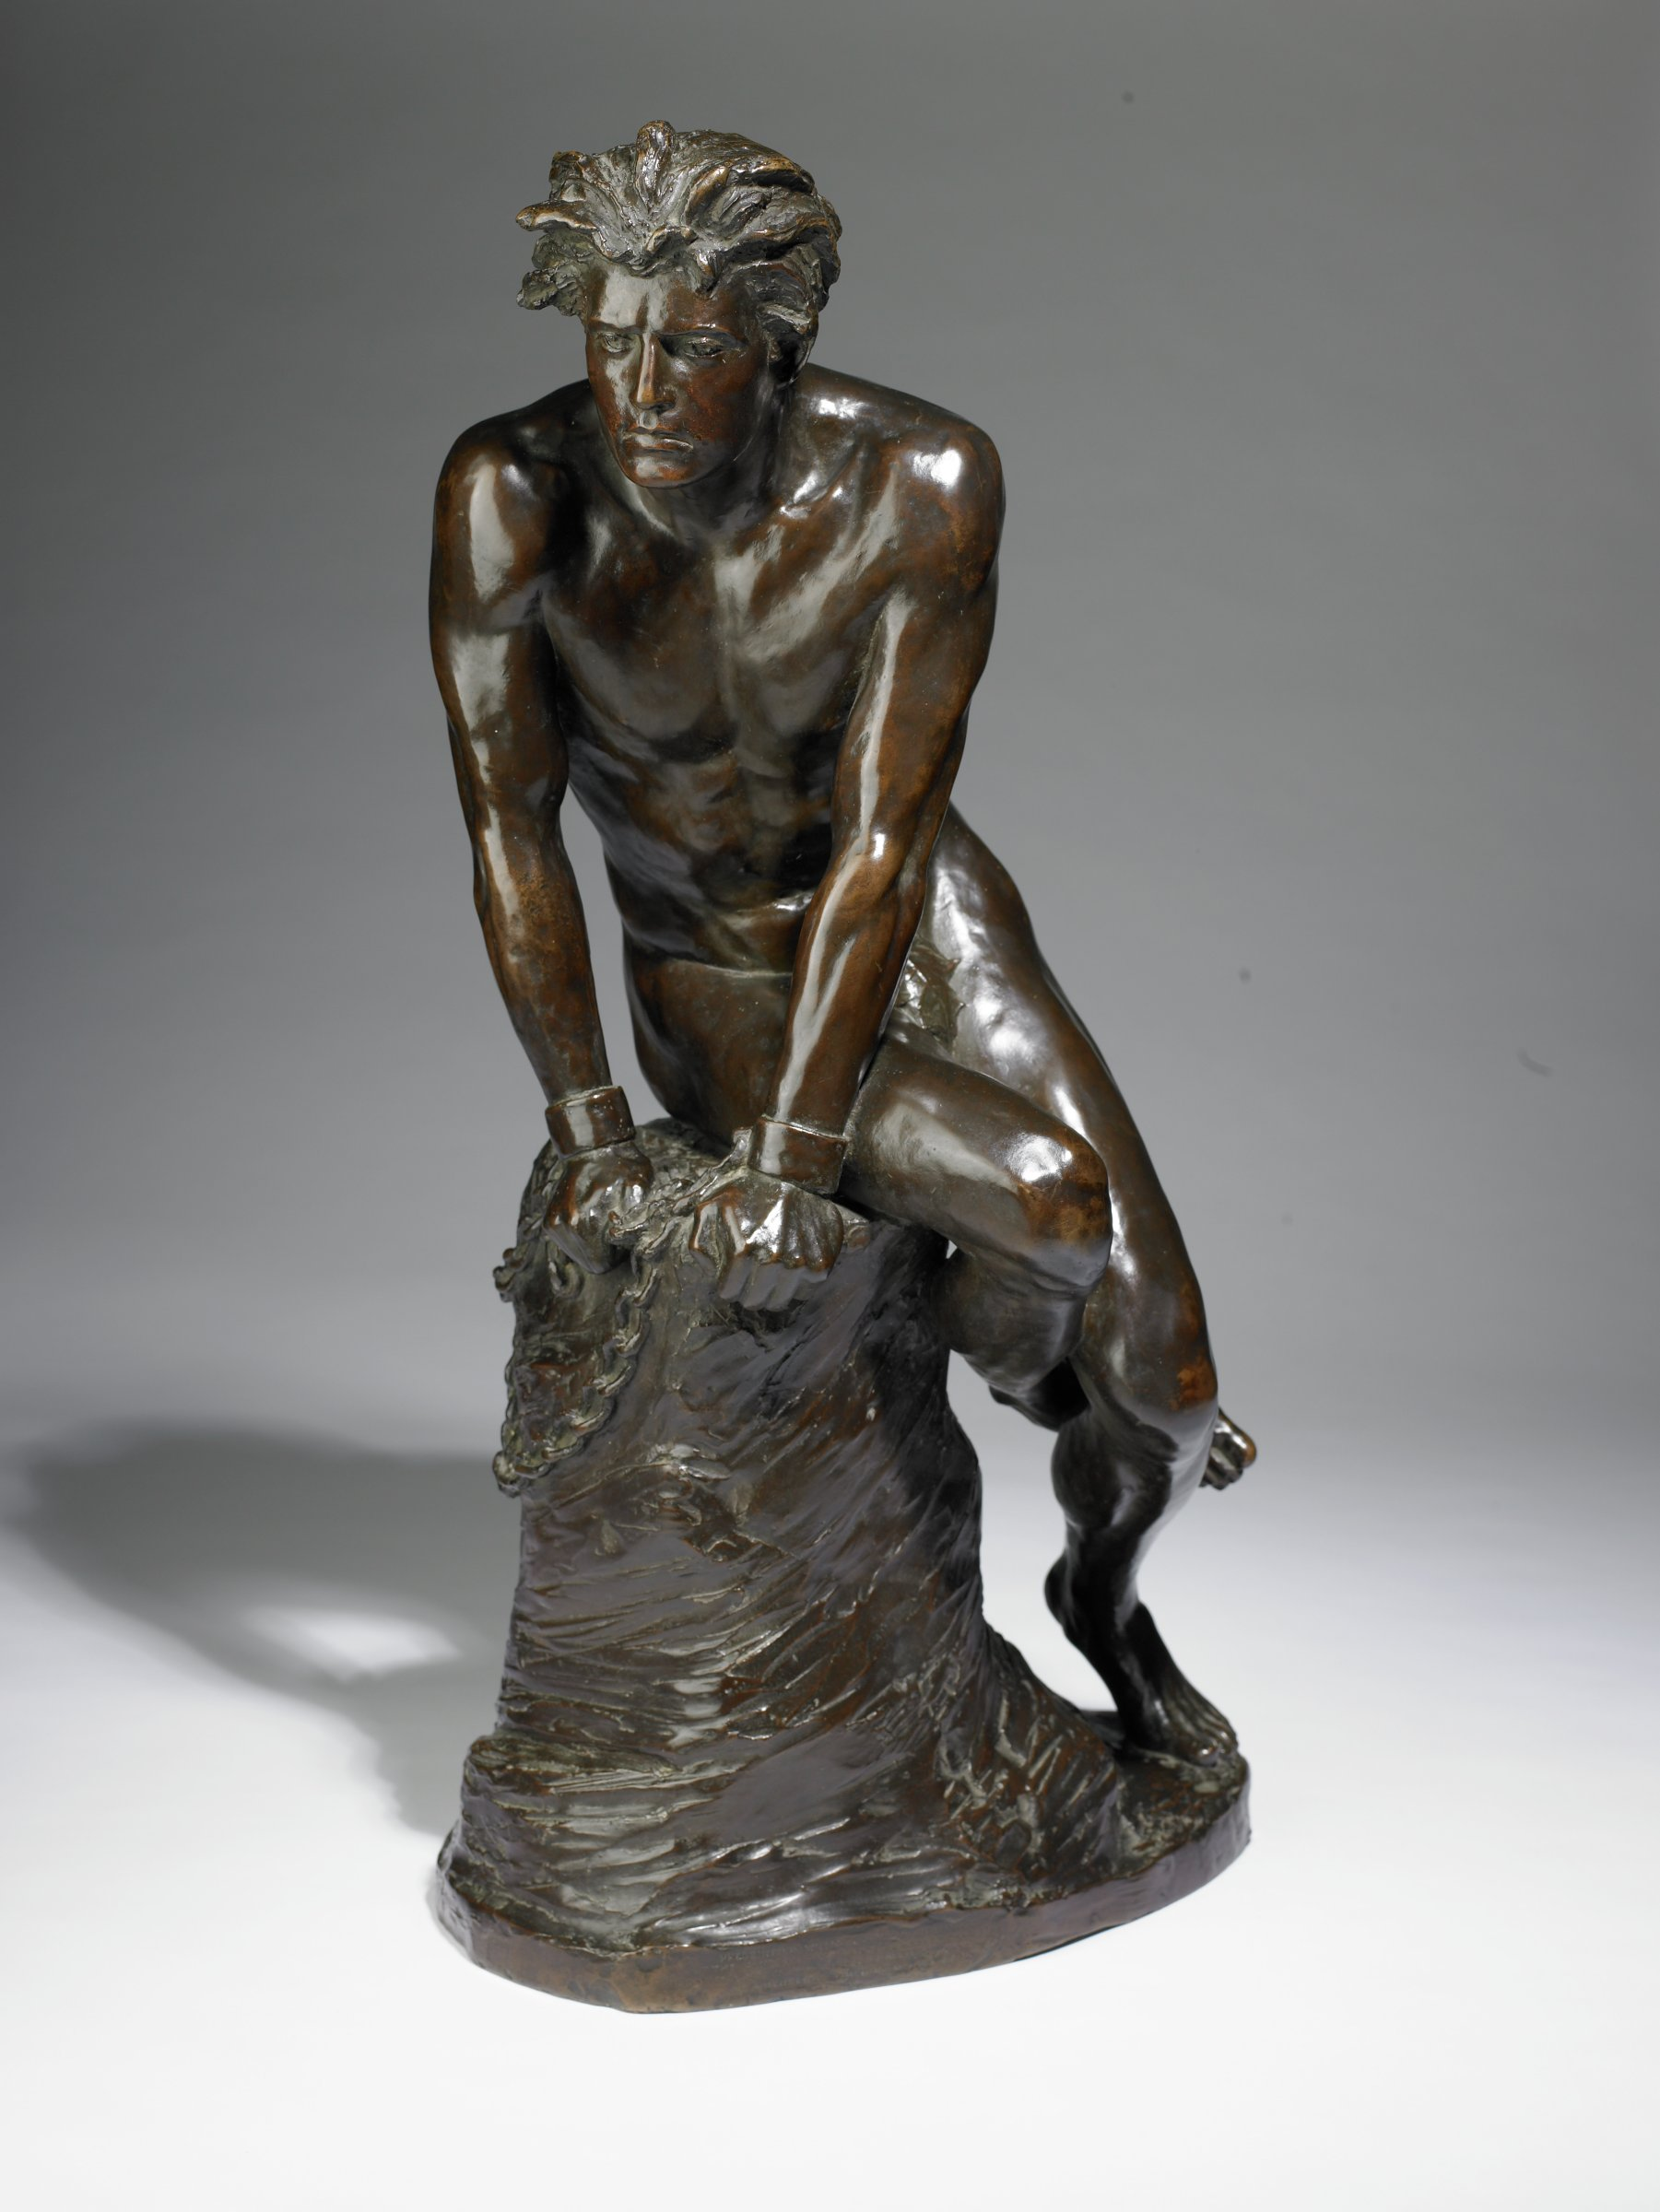 This bronze sculpture represents a nude man seated on a rock with chains on his wrists.